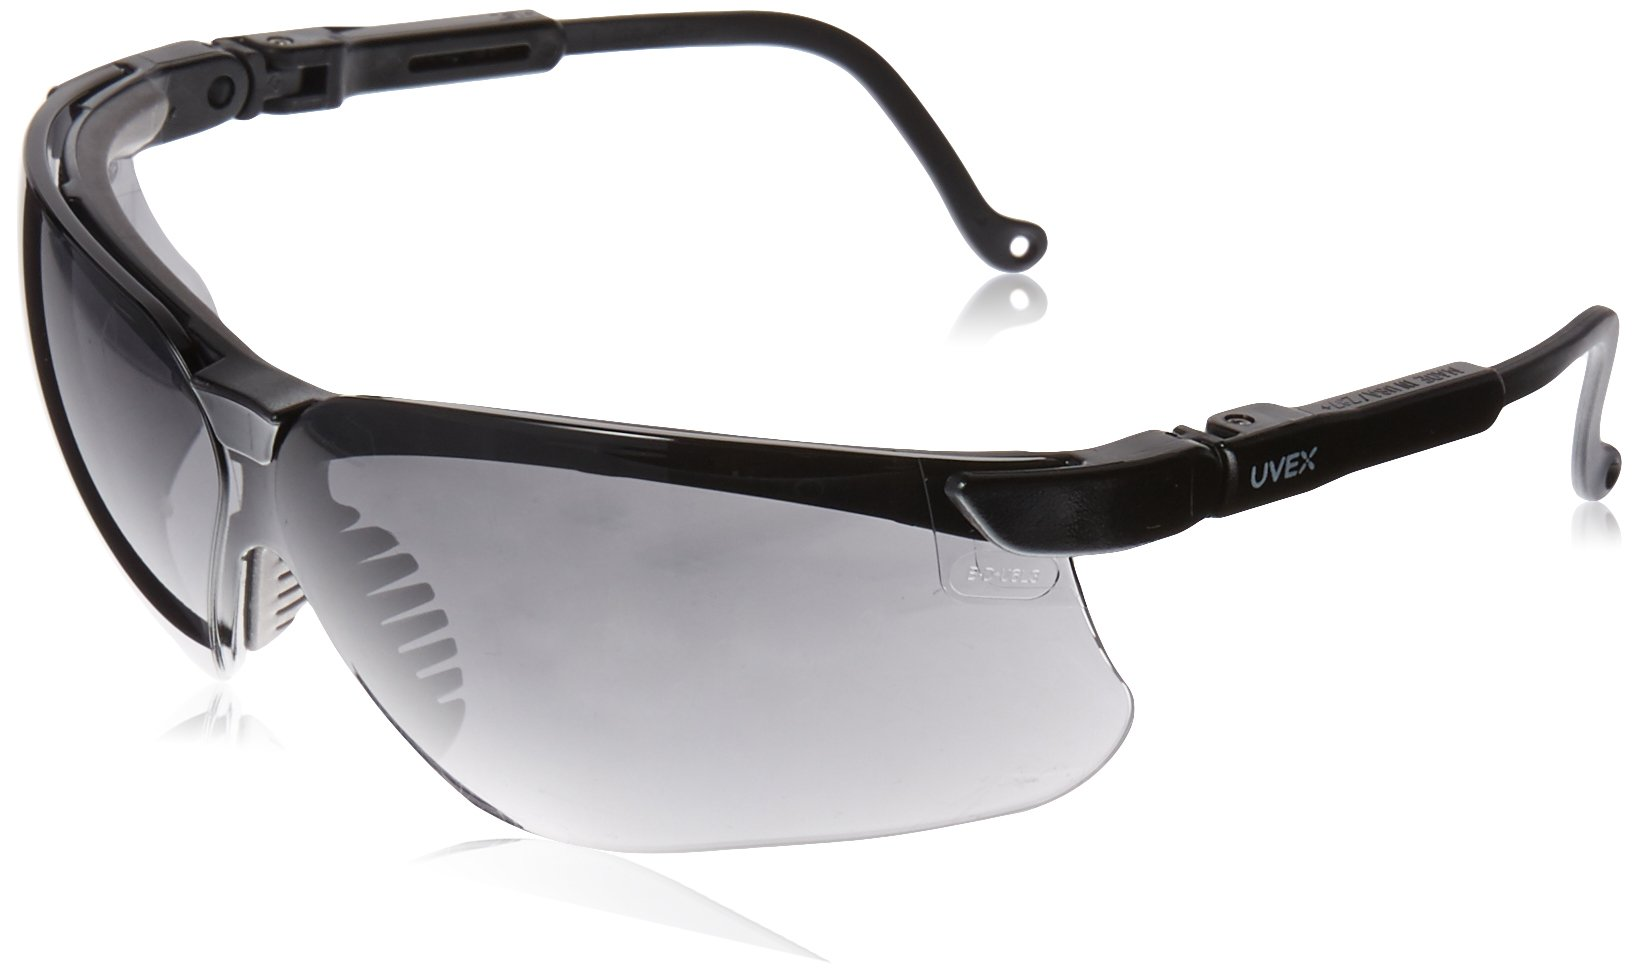 Uvex S3212X Genesis Safety Eyewear, Black Frame, Dark Gray UV Extreme Anti-Fog Lens